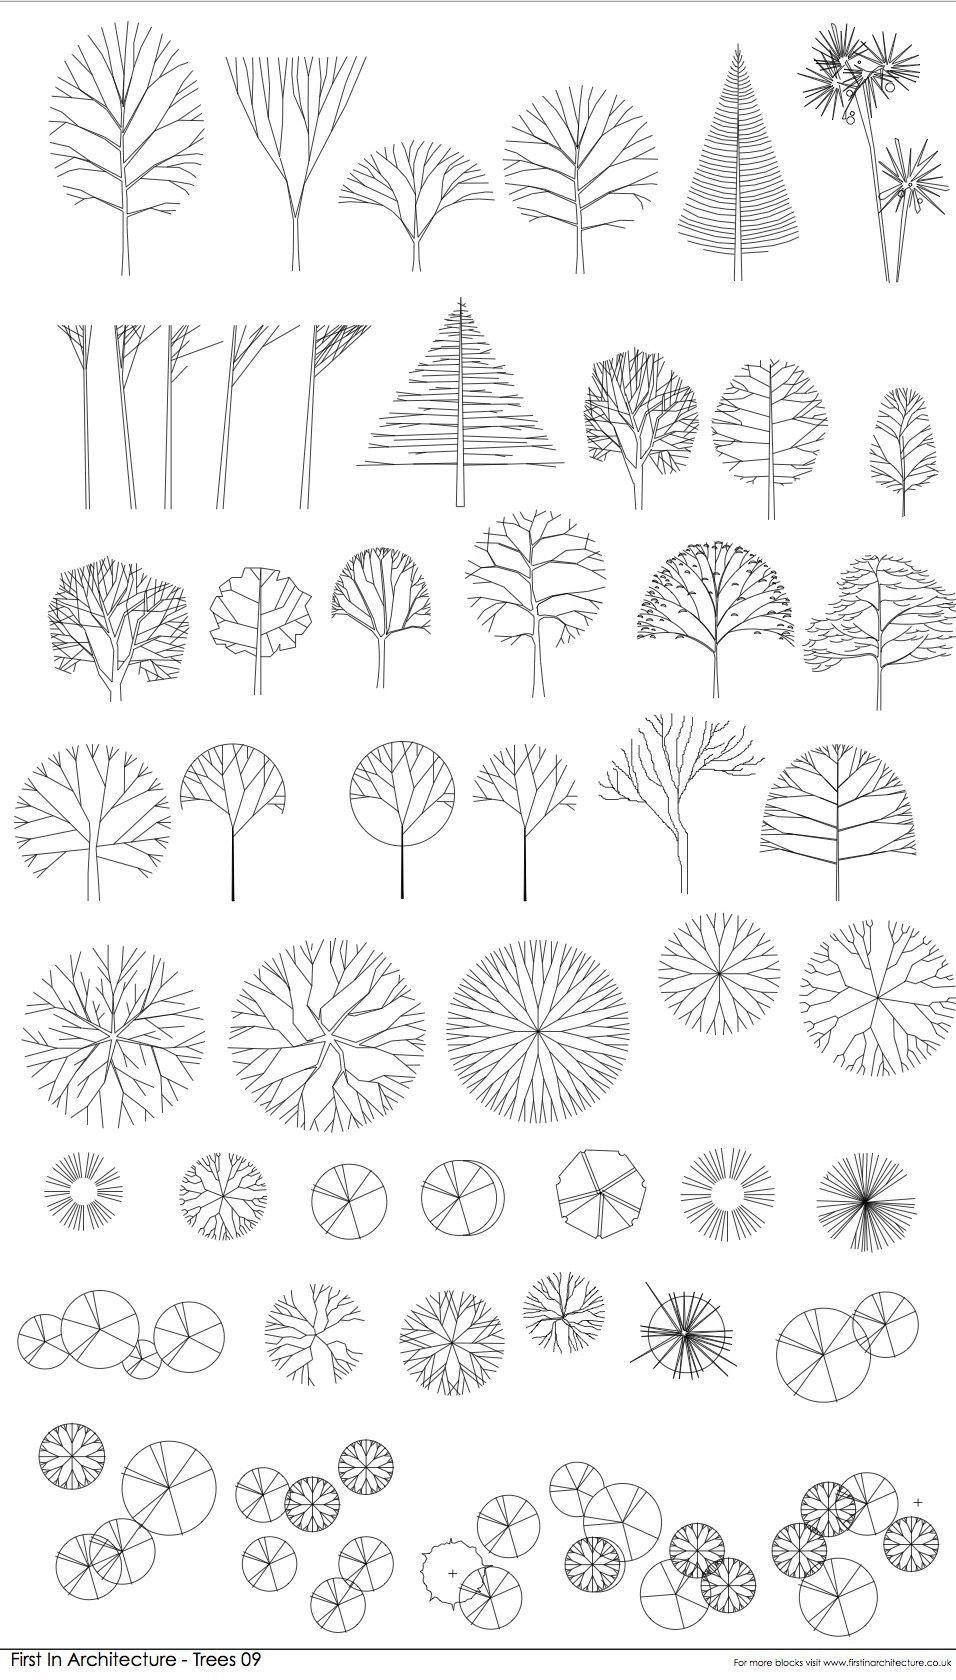 Free CAD Blocks   Trees 09 is part of architecture - Here is another set of free cad blocks from the First In Architecture Cad Block database  I hope you find them useful  Please feel free to download them  My free autocad block library continues to grow  if you have any suggestions for useful content please get in touch  This set of cad blocks includes Trees in plan Linear style trees in elevation Tree Cad Blocks  plan and elevation About First In Architecture Free Cad Blocks Thank you for using First In Architecture block database  These autocad blocks are provided free, for use by anyone  Please do not share or sell the blocks on